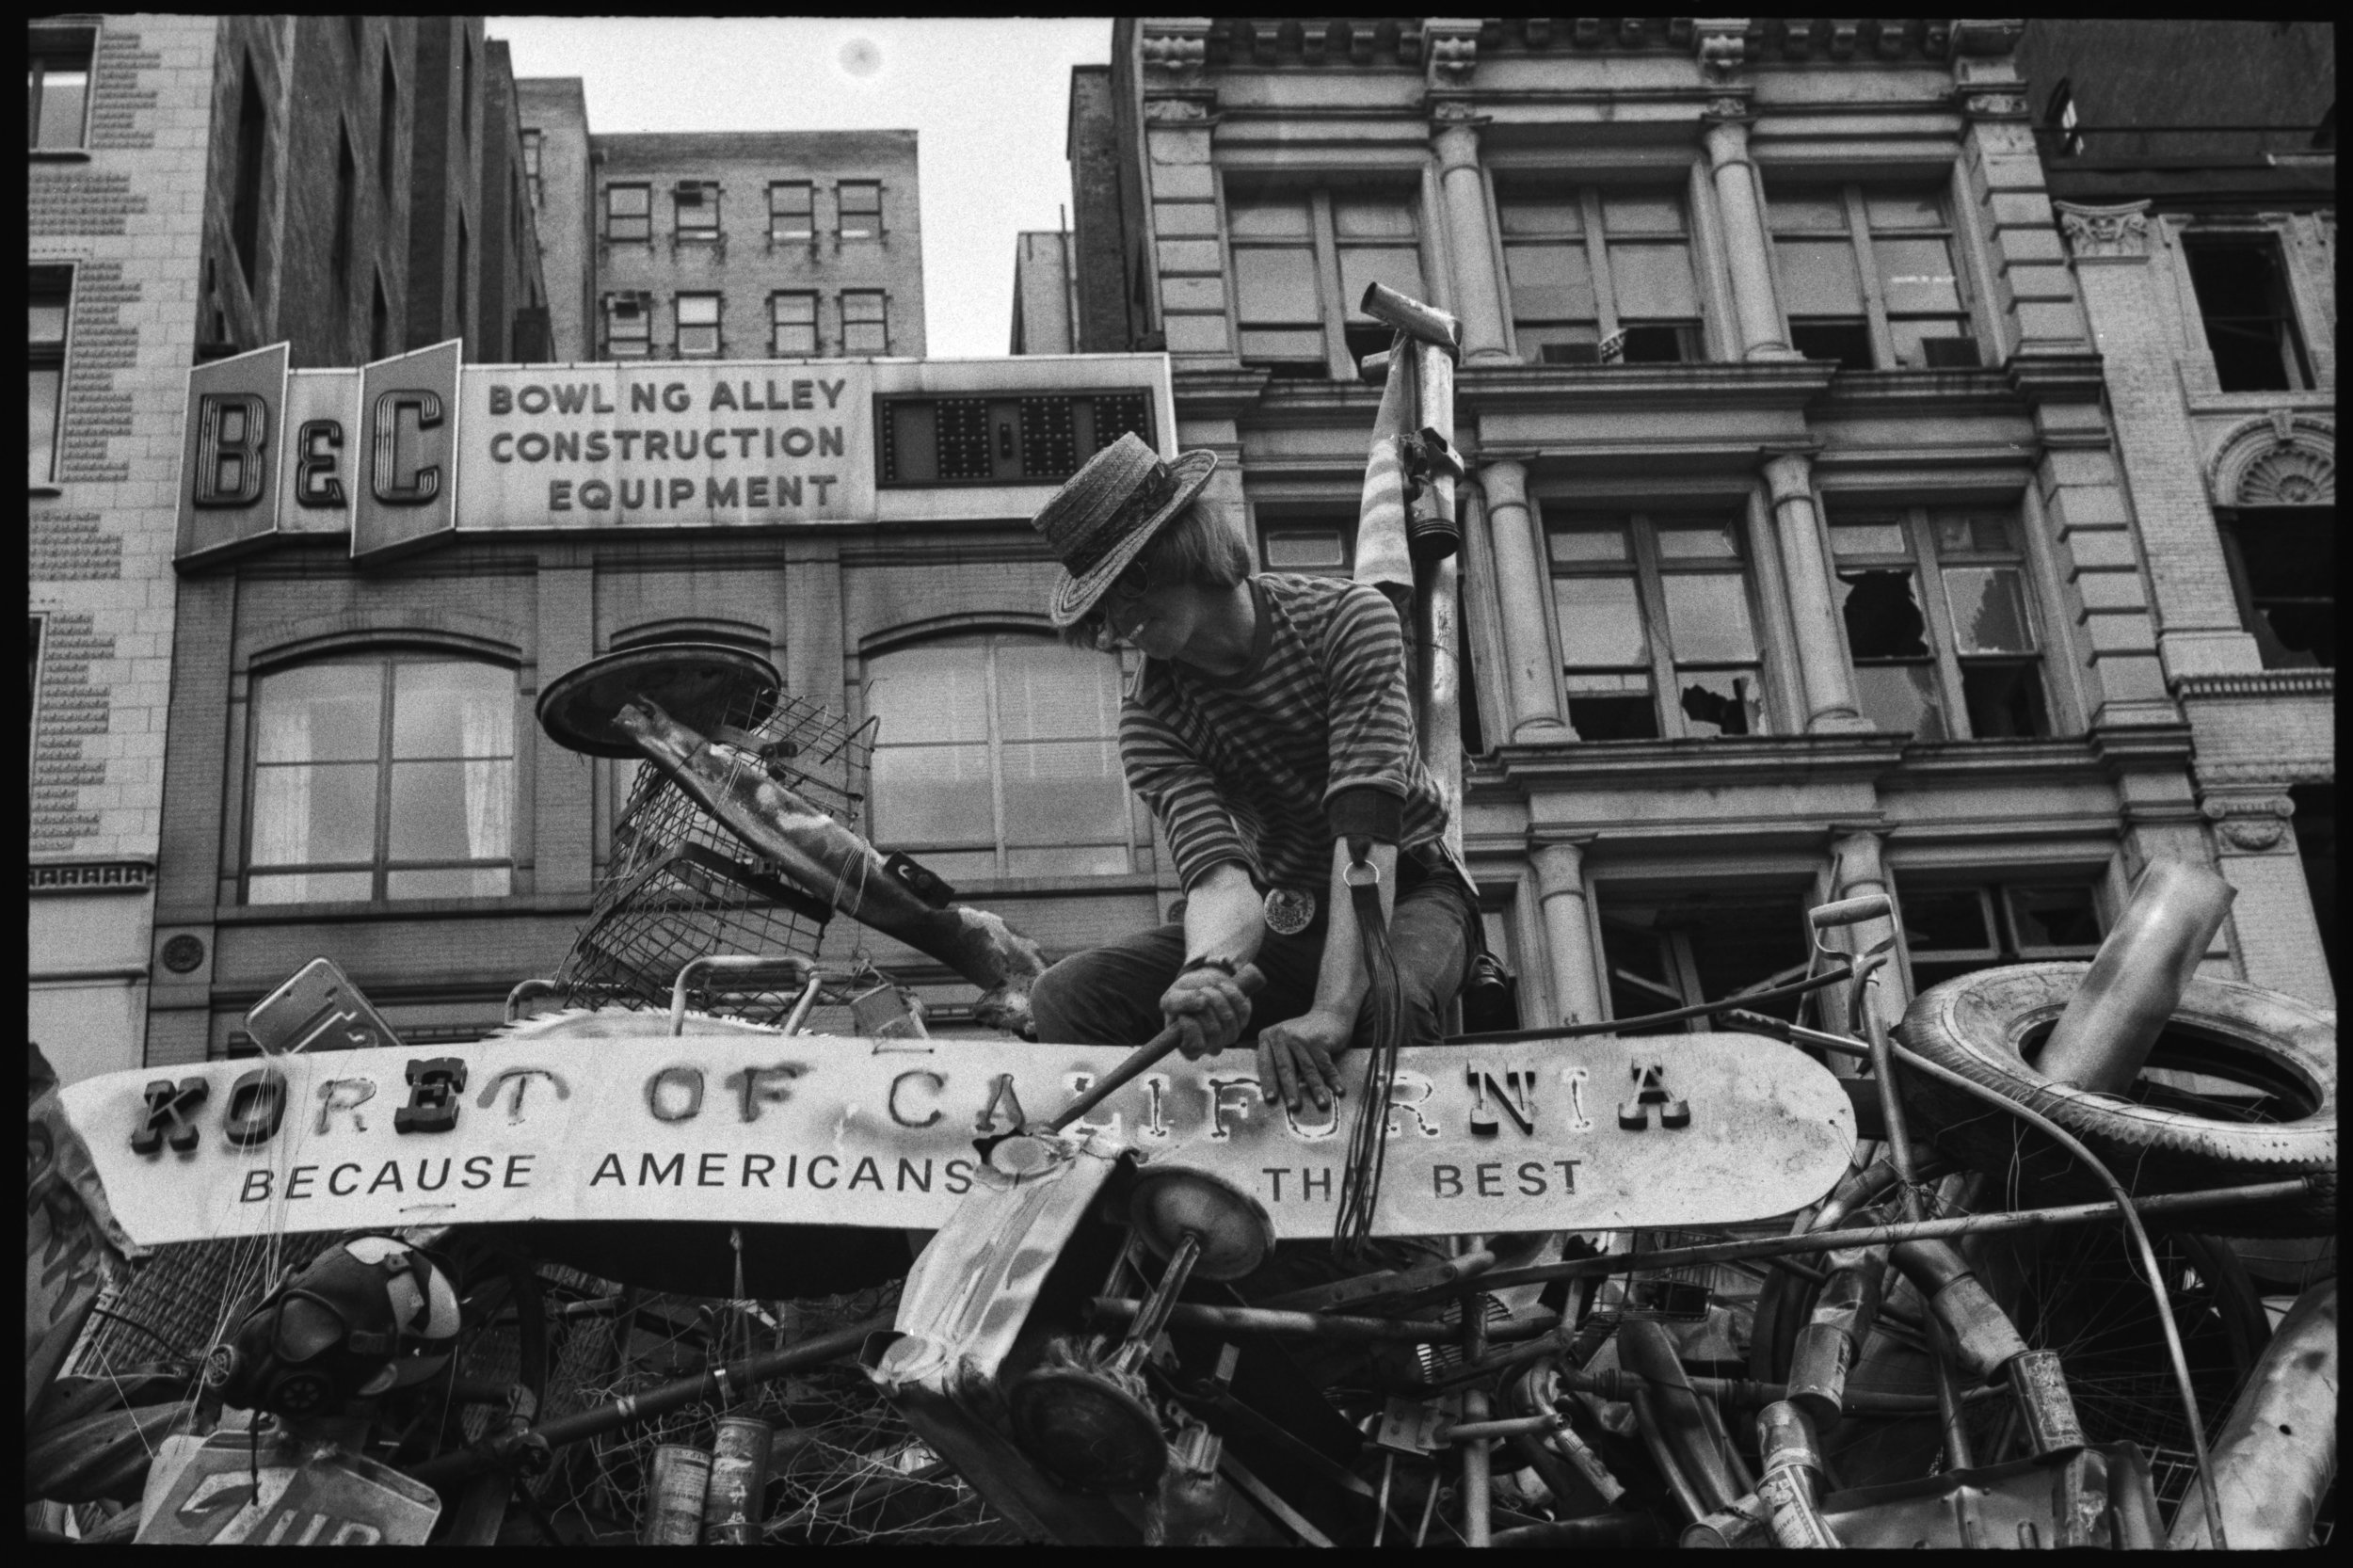 Earth Day Float, April 22, 1970